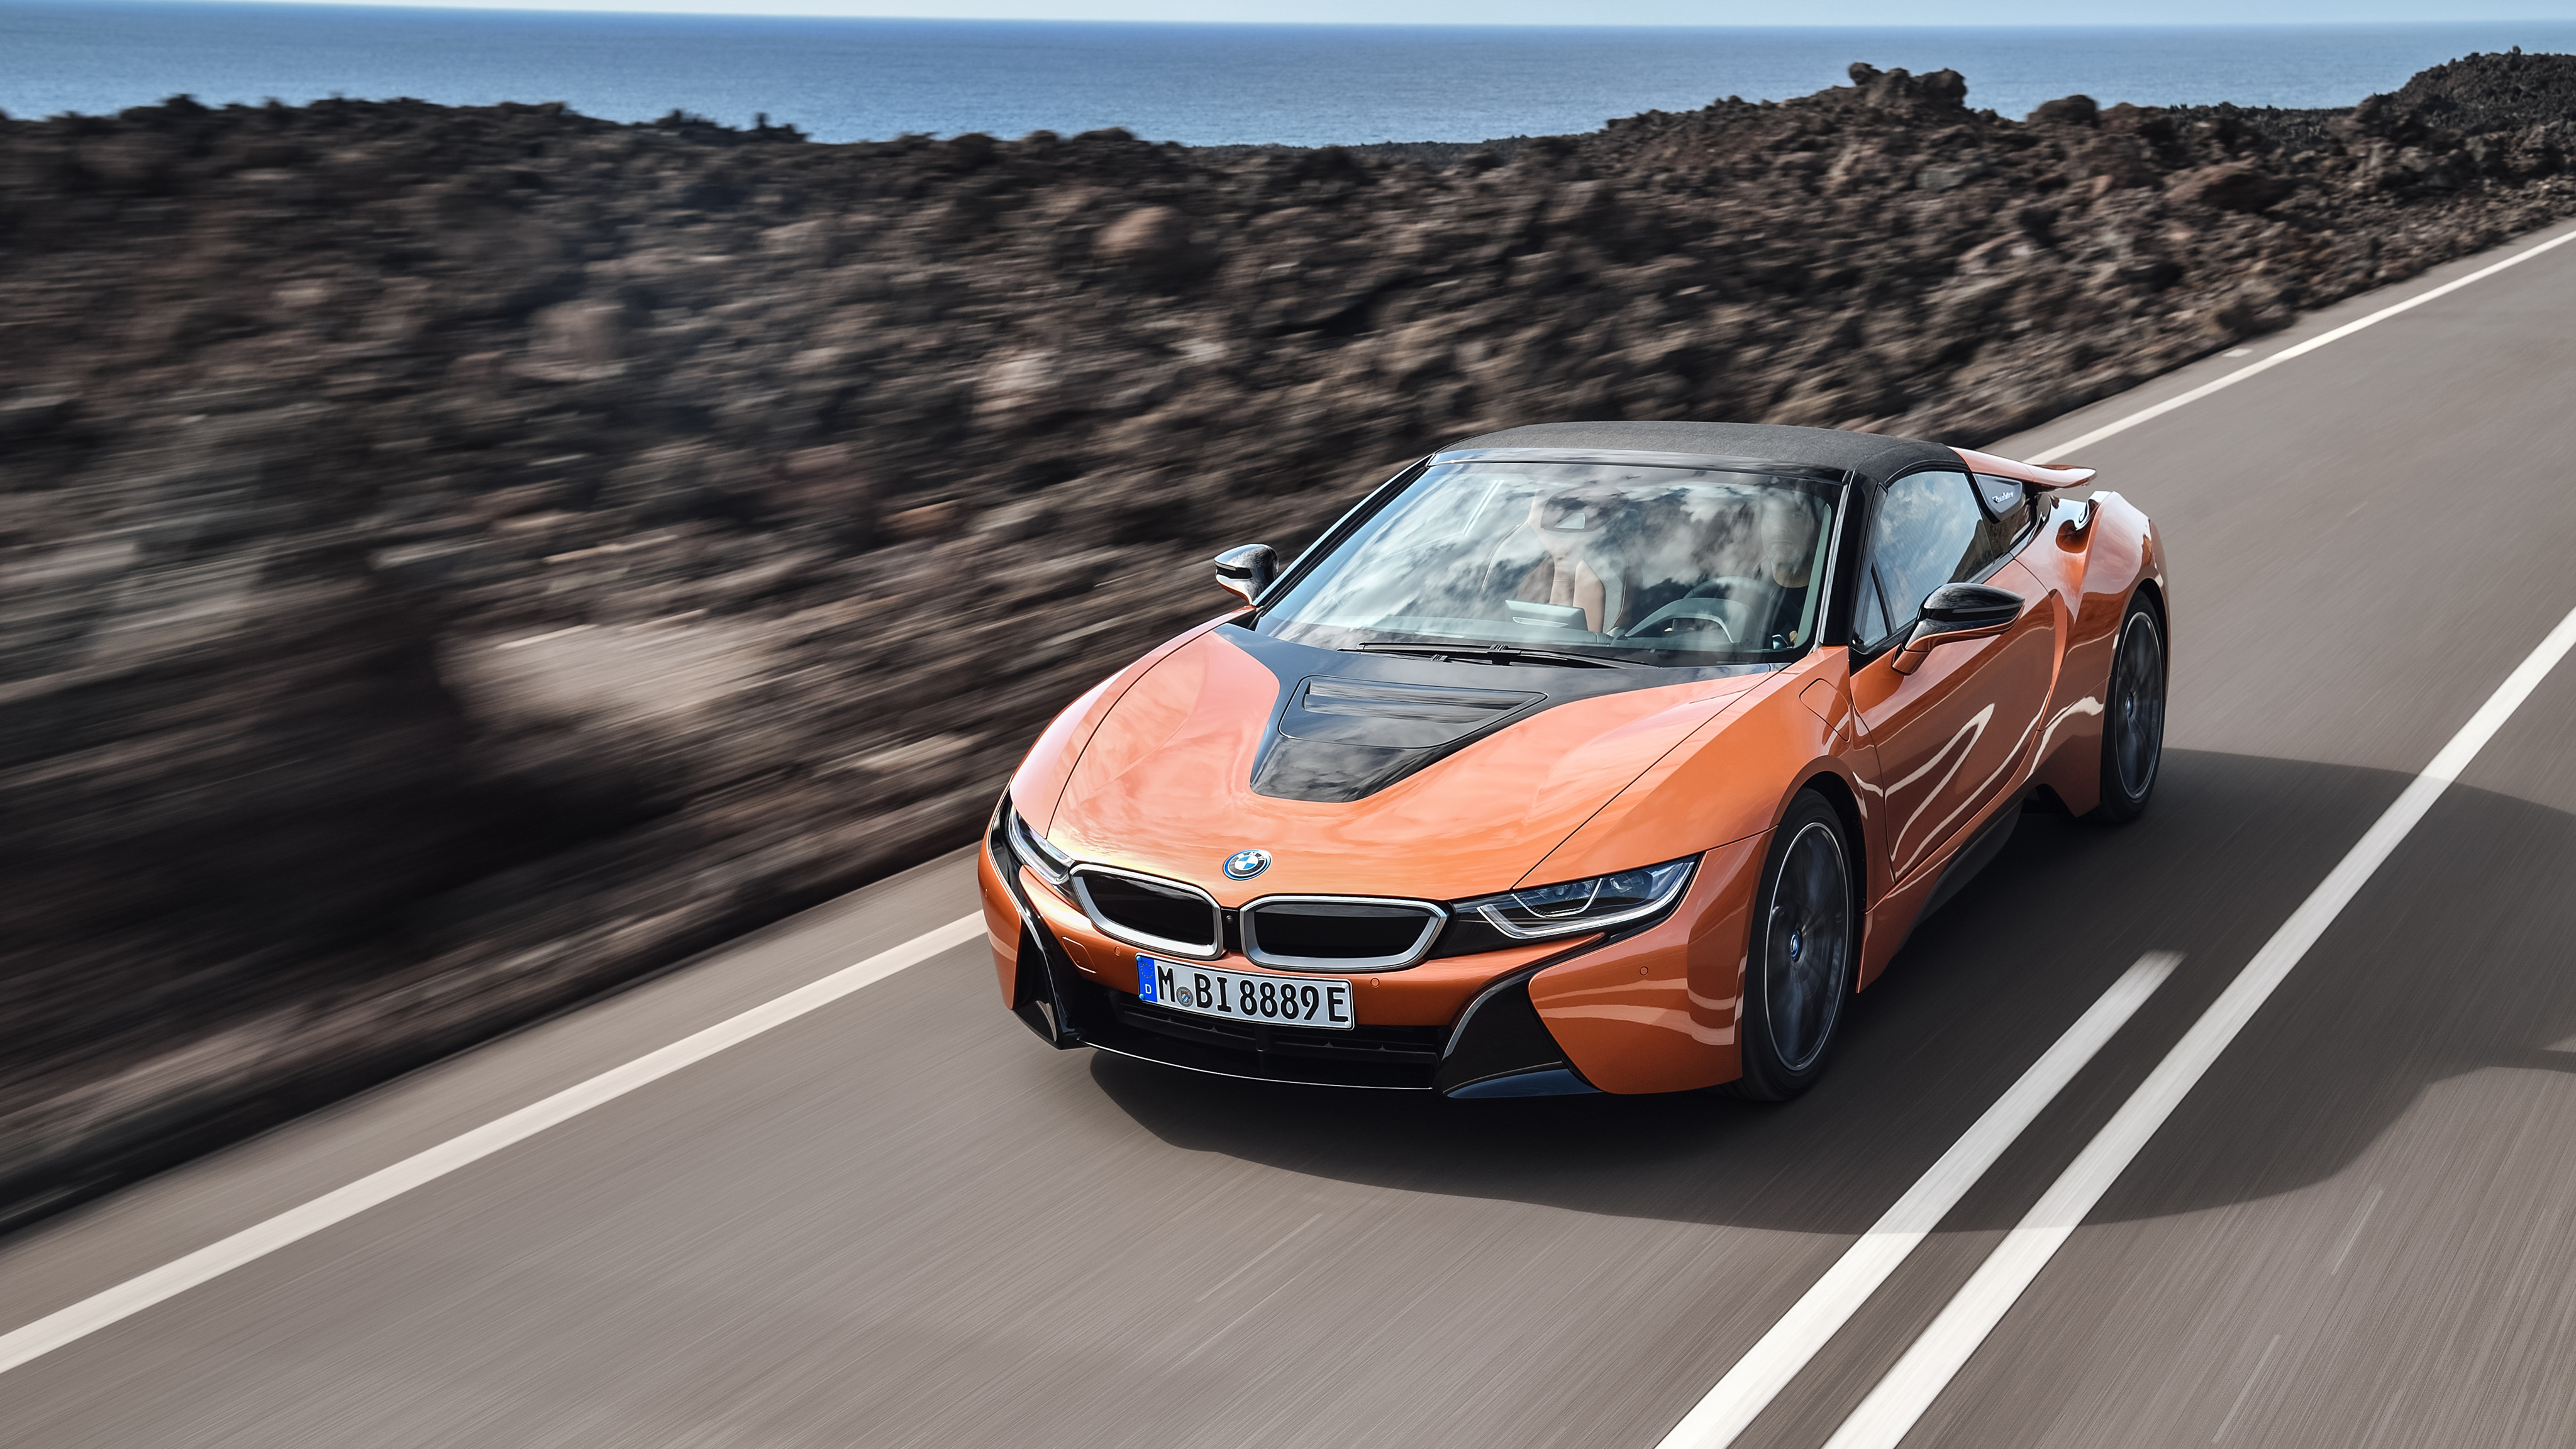 2018 bmw i8 roadster 4k wallpaper hd car wallpapers id 9193. Black Bedroom Furniture Sets. Home Design Ideas